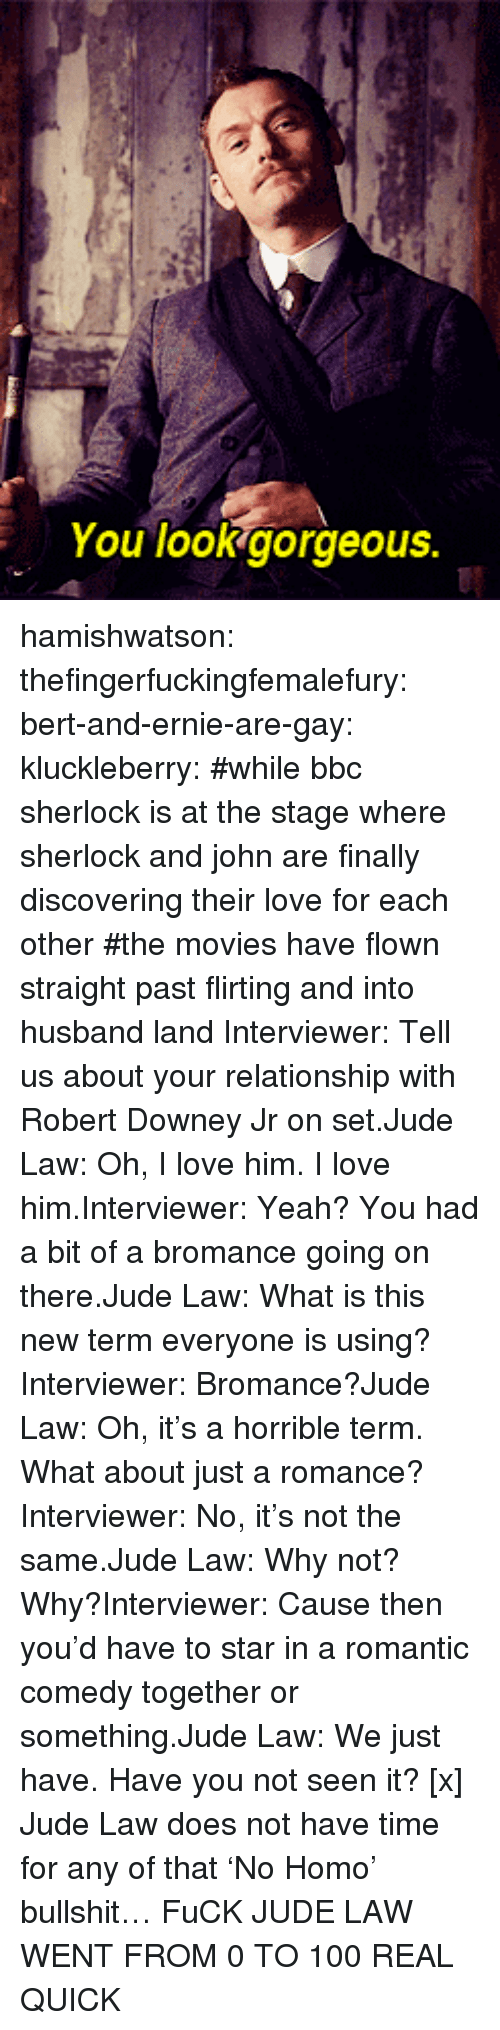 holmes: You lookgorgeous. hamishwatson: thefingerfuckingfemalefury:  bert-and-ernie-are-gay:  kluckleberry: #while bbc sherlock is at the stage where sherlock and john are finally discovering their love for each other#the movies have flown straight past flirting and into husband land Interviewer: Tell us about your relationship with Robert Downey Jr on set.Jude Law: Oh, I love him. I love him.Interviewer: Yeah? You had a bit of a bromance going on there.Jude Law: What is this new term everyone is using?Interviewer: Bromance?Jude Law: Oh, it's a horrible term. What about just a romance?Interviewer: No, it's not the same.Jude Law: Why not? Why?Interviewer: Cause then you'd have to star in a romantic comedy together or something.Jude Law: We just have. Have you not seen it? [x]  Jude Law does not have time for any of that 'No Homo' bullshit…  FuCK JUDE LAW WENT FROM 0 TO 100 REAL QUICK